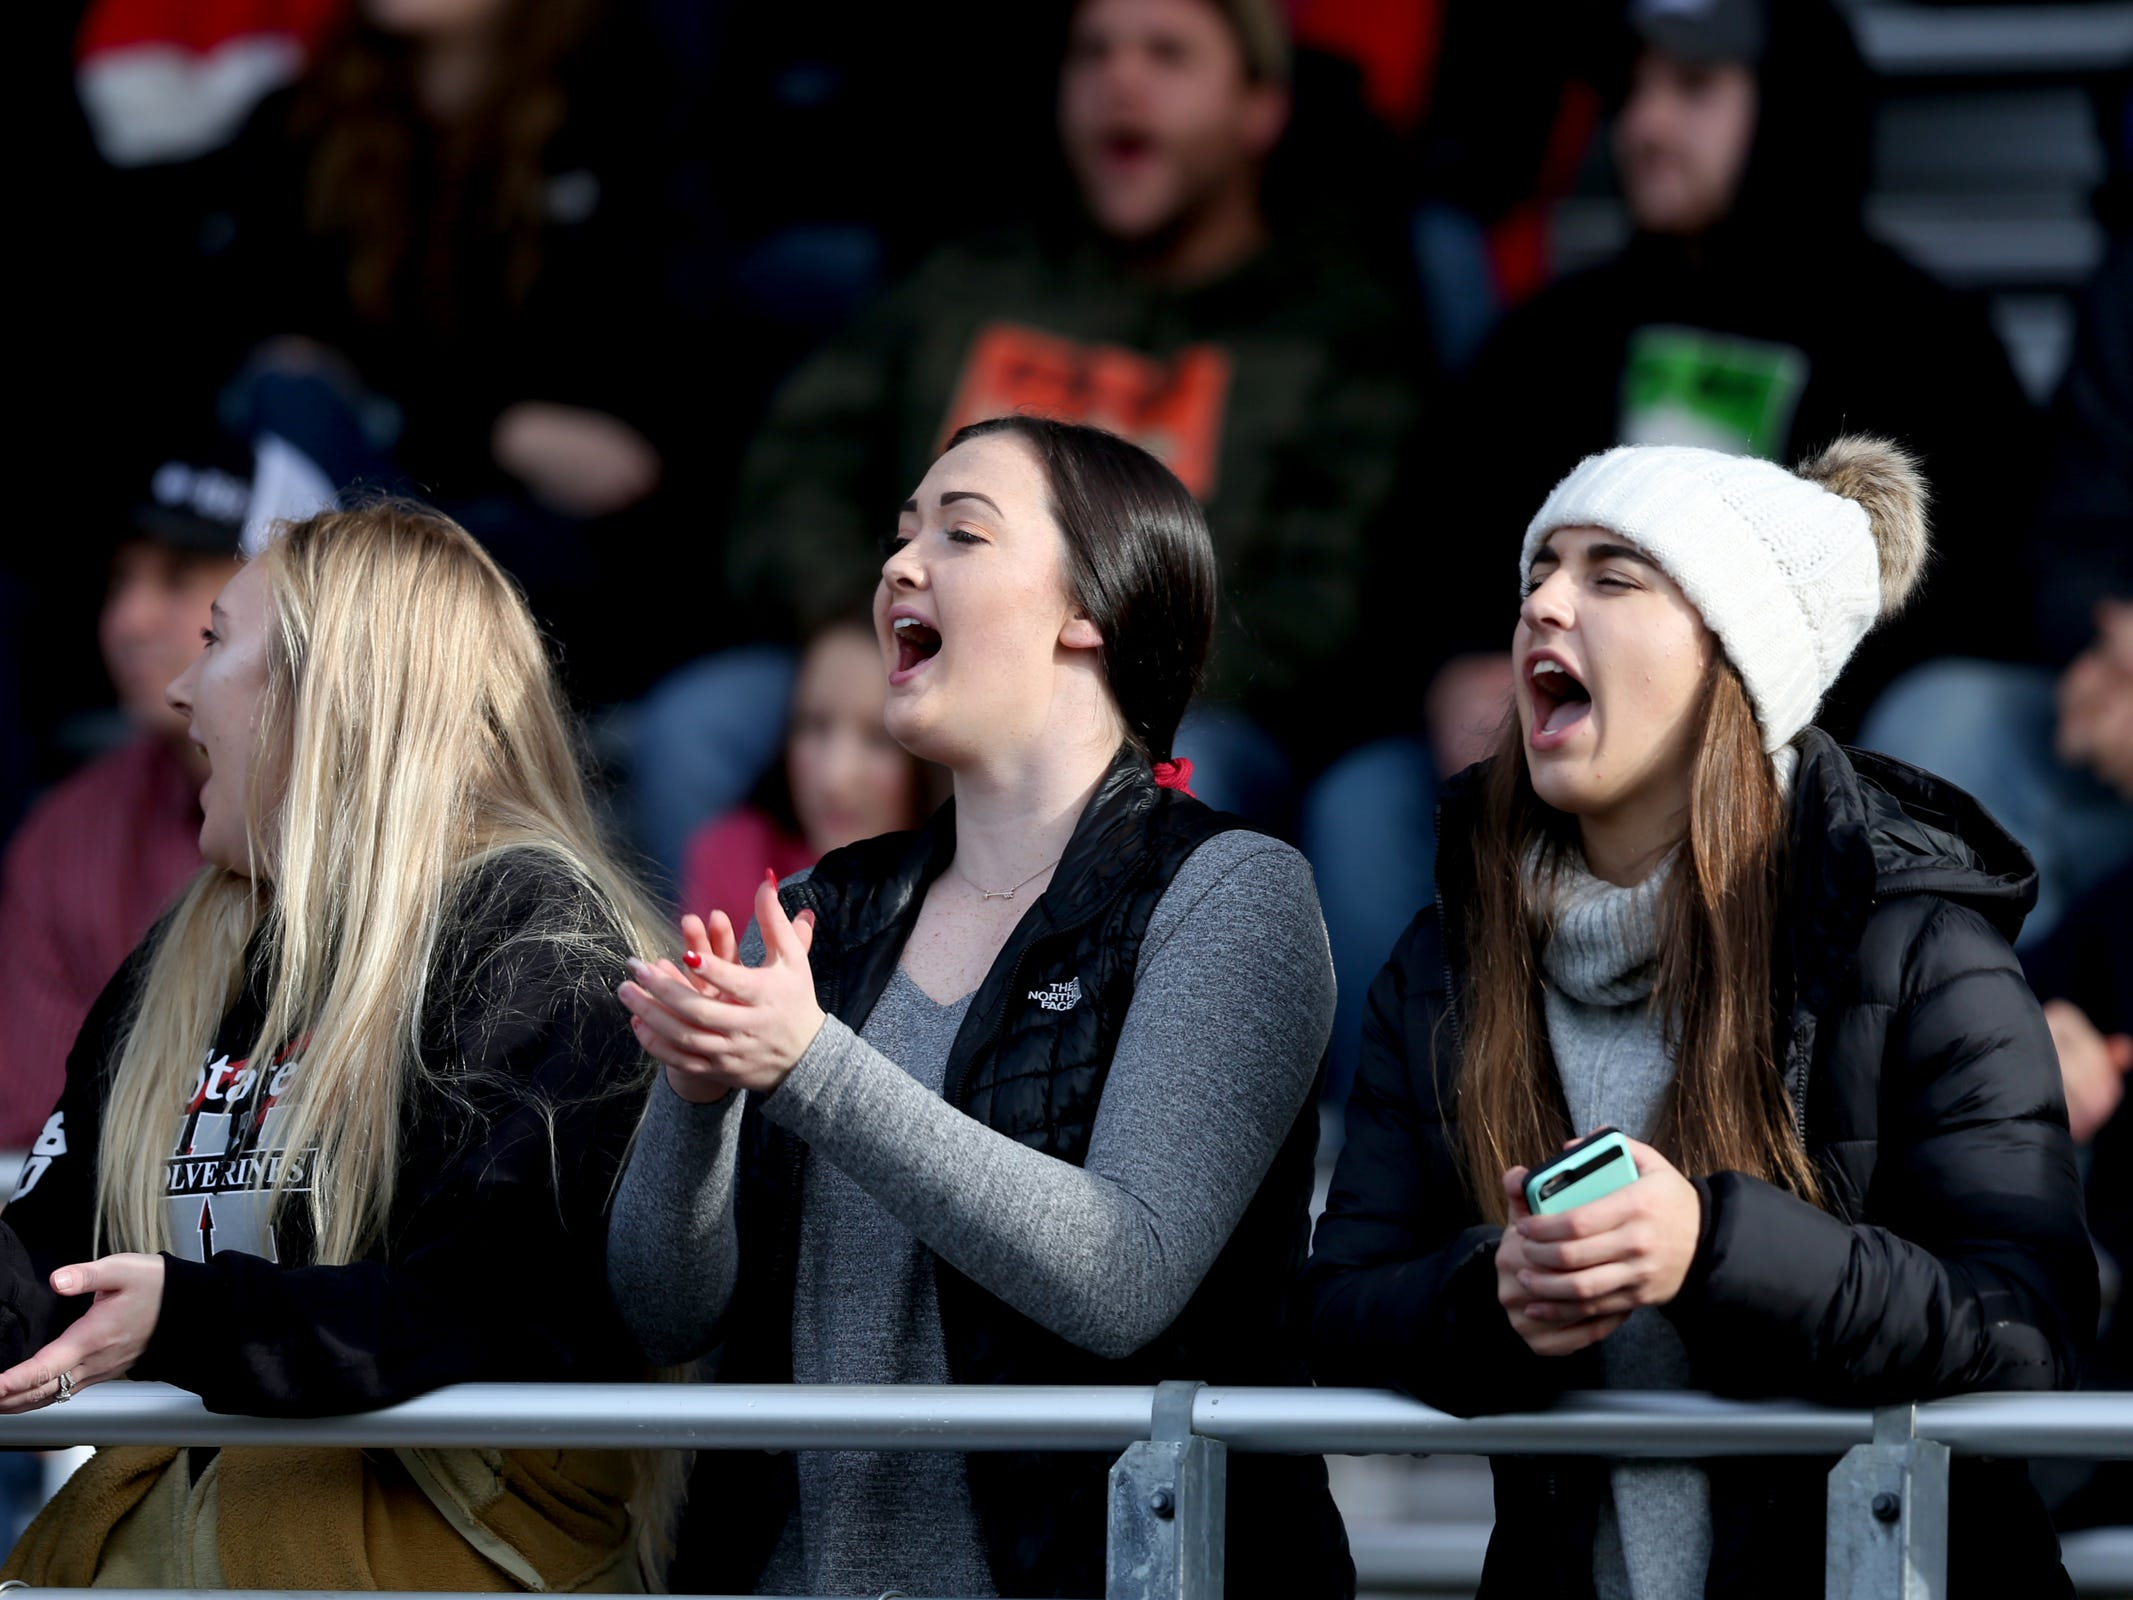 Santiam fans cheer in the Kennedy vs. Santiam OSAA Class 2A state championship football game at Cottage Grove High School in Cottage Grove on Saturday, Nov. 24, 2018.